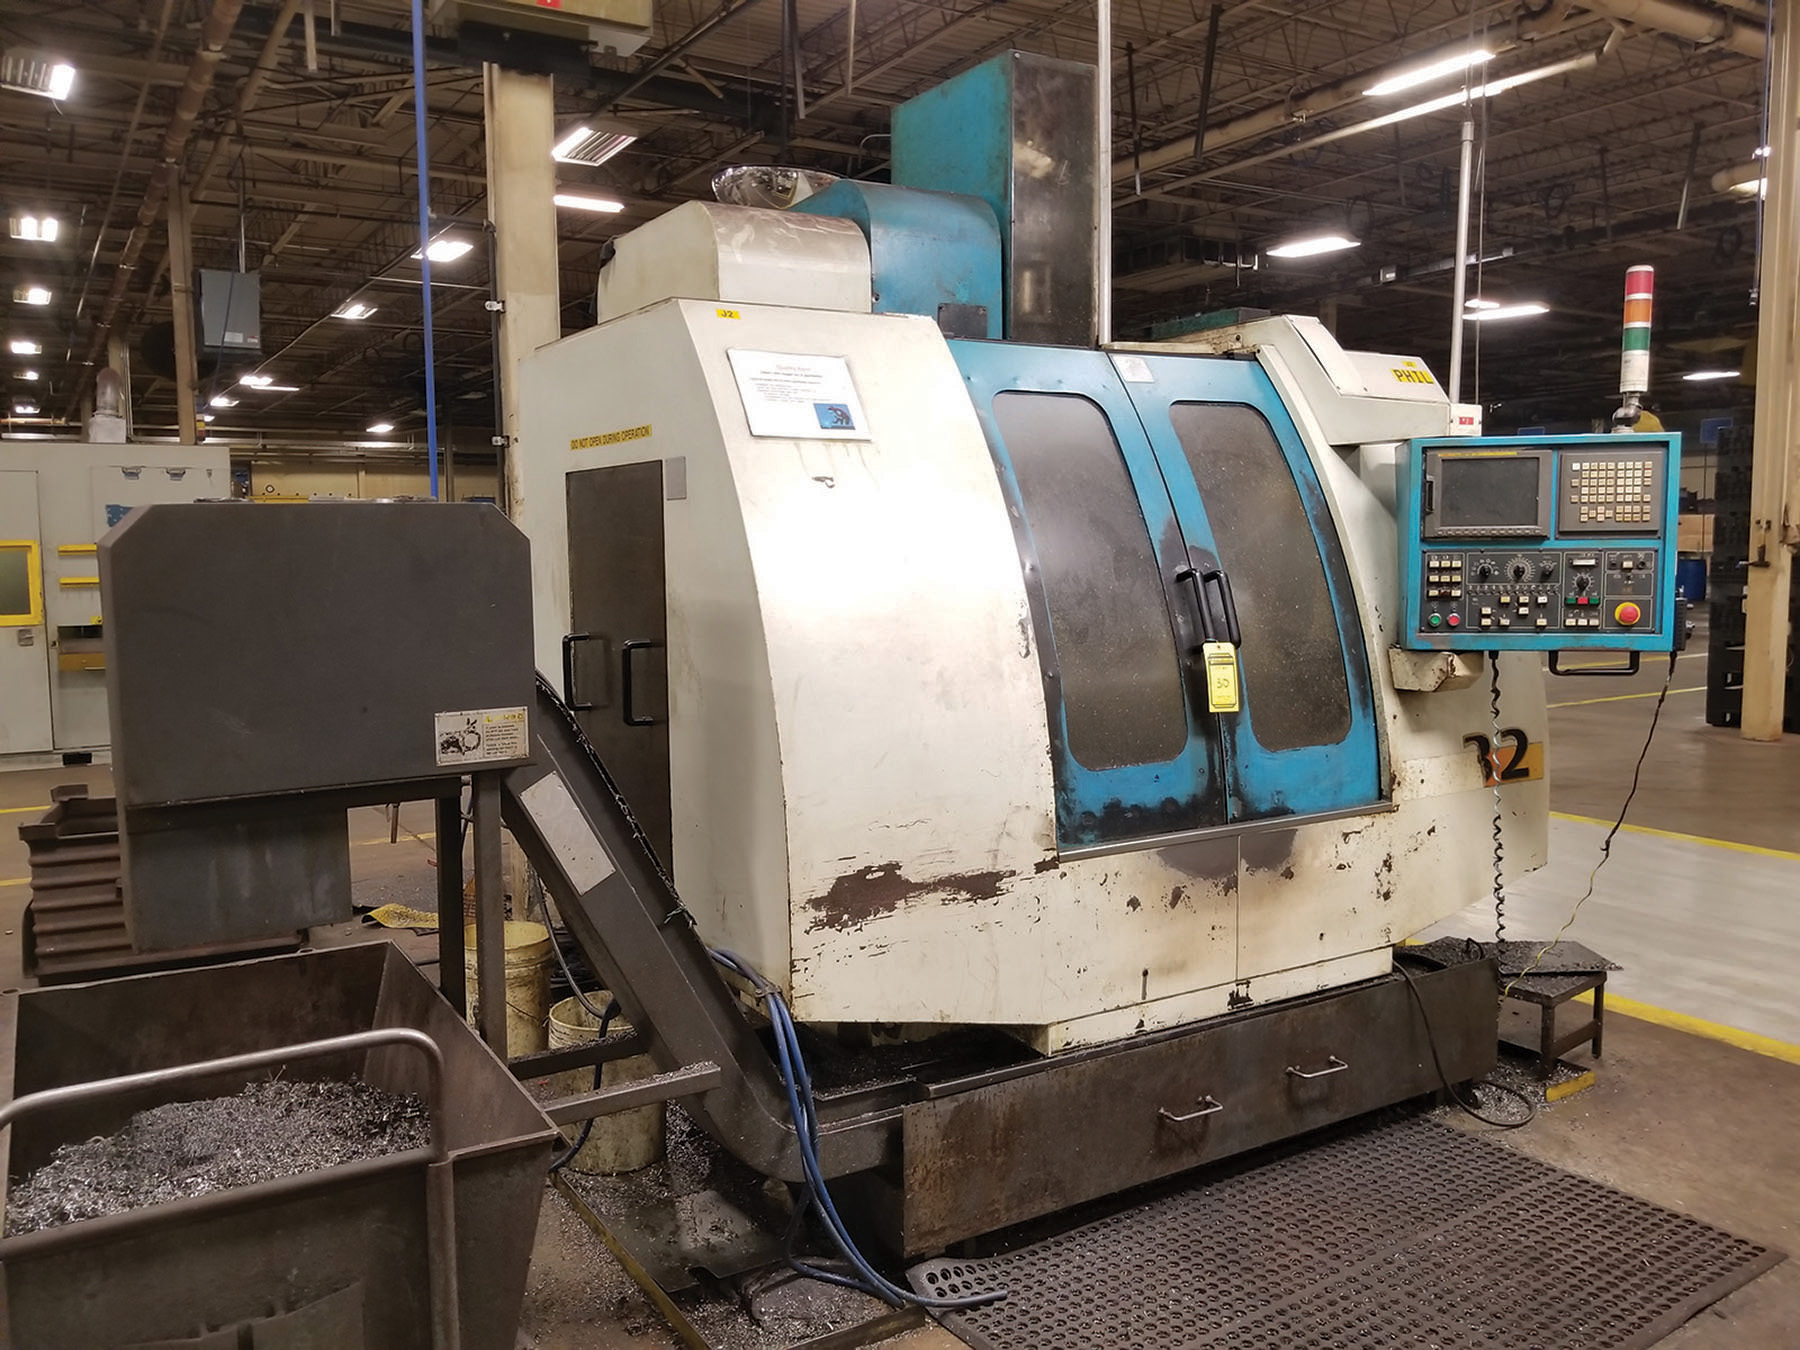 Lot 30 - 2002 JOHNFORD SUPER VERTICAL SV-32 VERTICAL MACHINING CENTER, 4-AXIS, S/N MB2302, 17.5'' X 39.25''